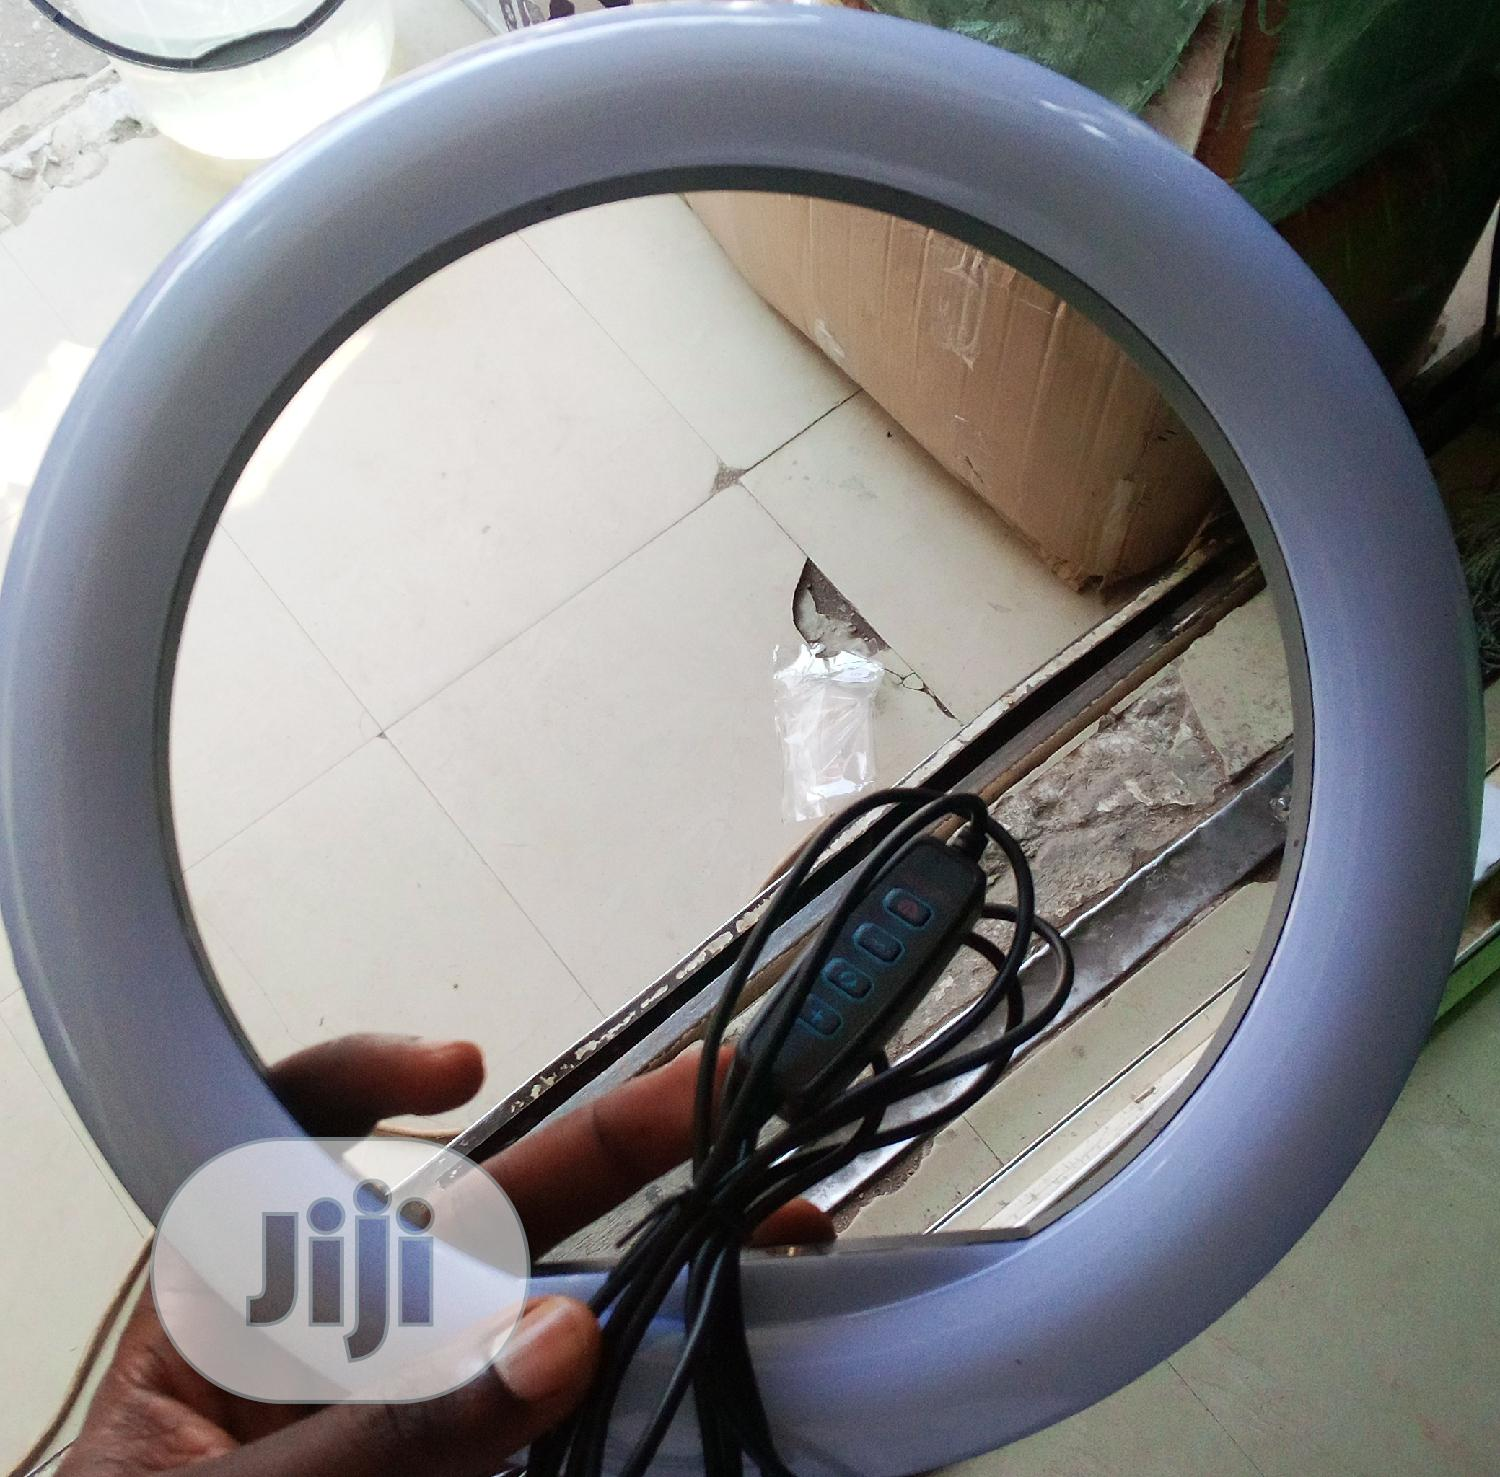 26cm/10inches Ring Light   Accessories & Supplies for Electronics for sale in Wuse, Abuja (FCT) State, Nigeria